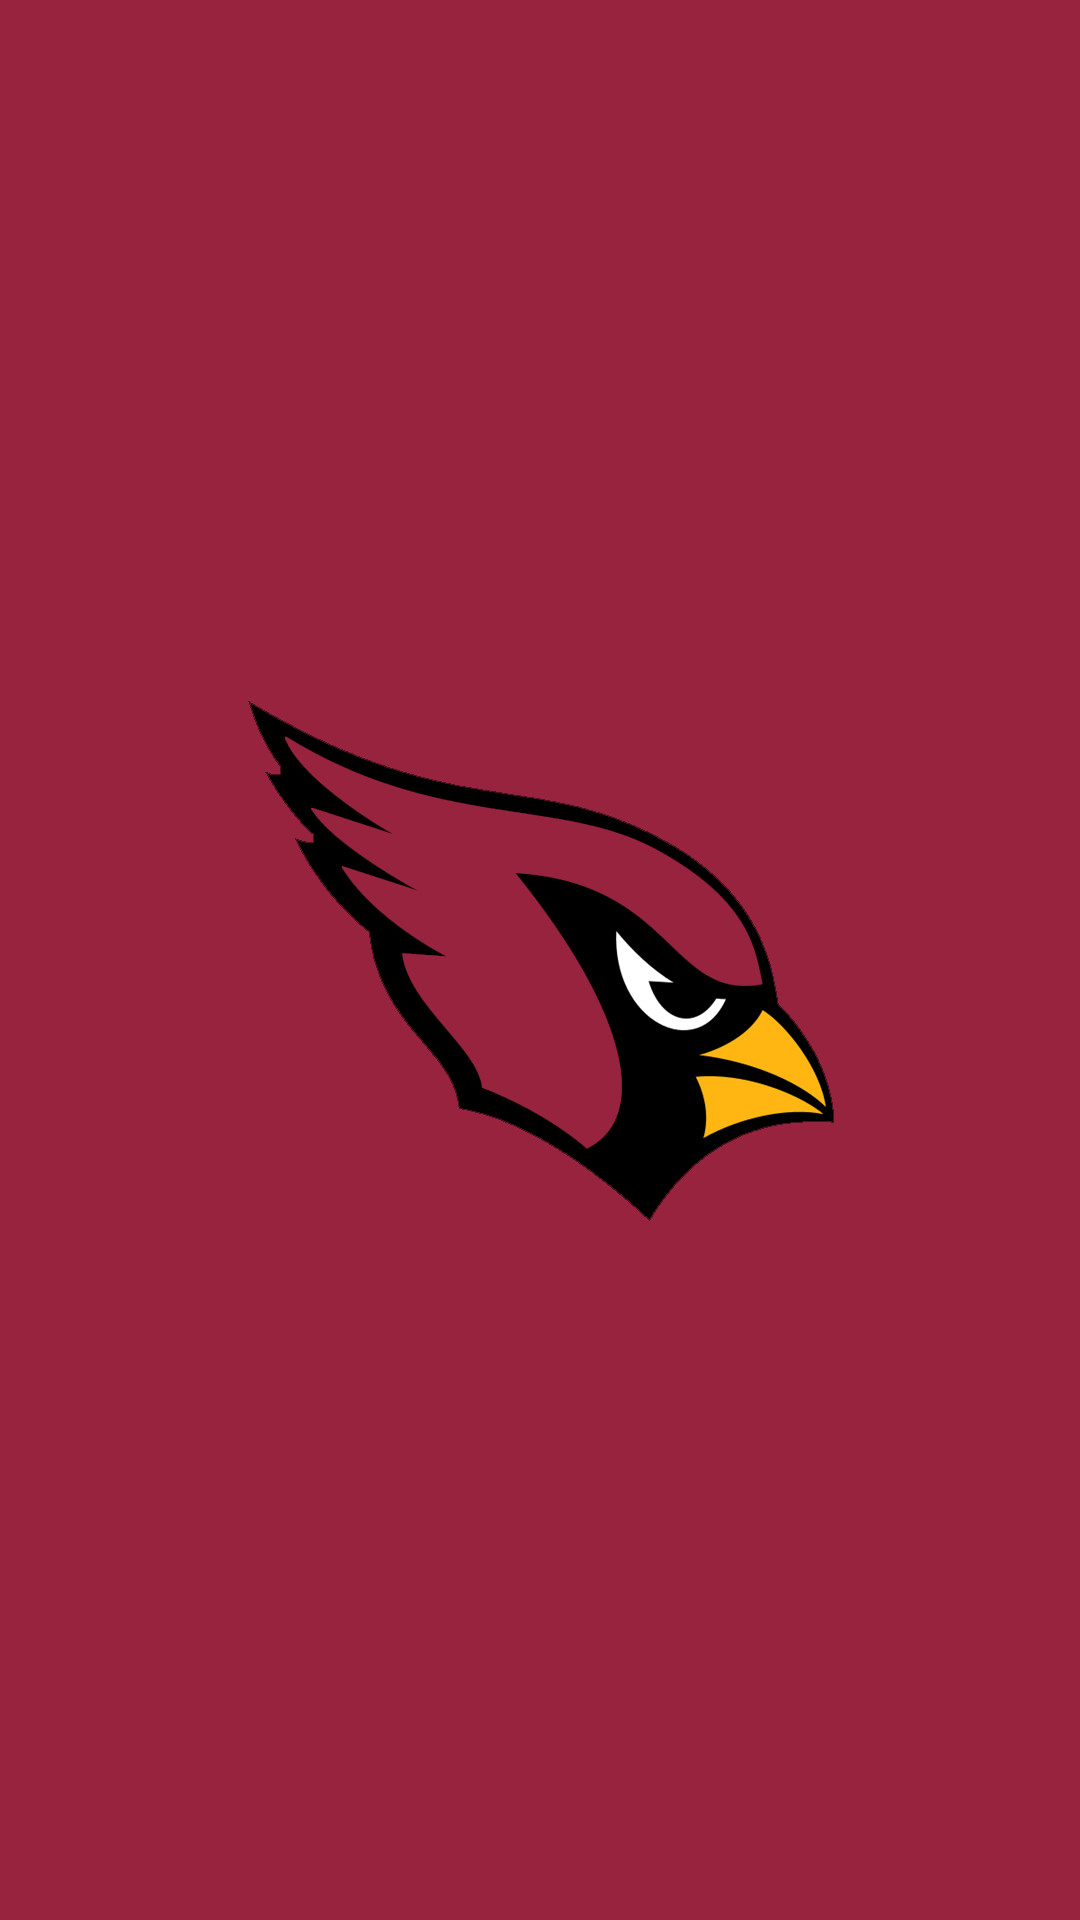 Res: 1080x1920, Arizona Cardinals Phone Wallpapers